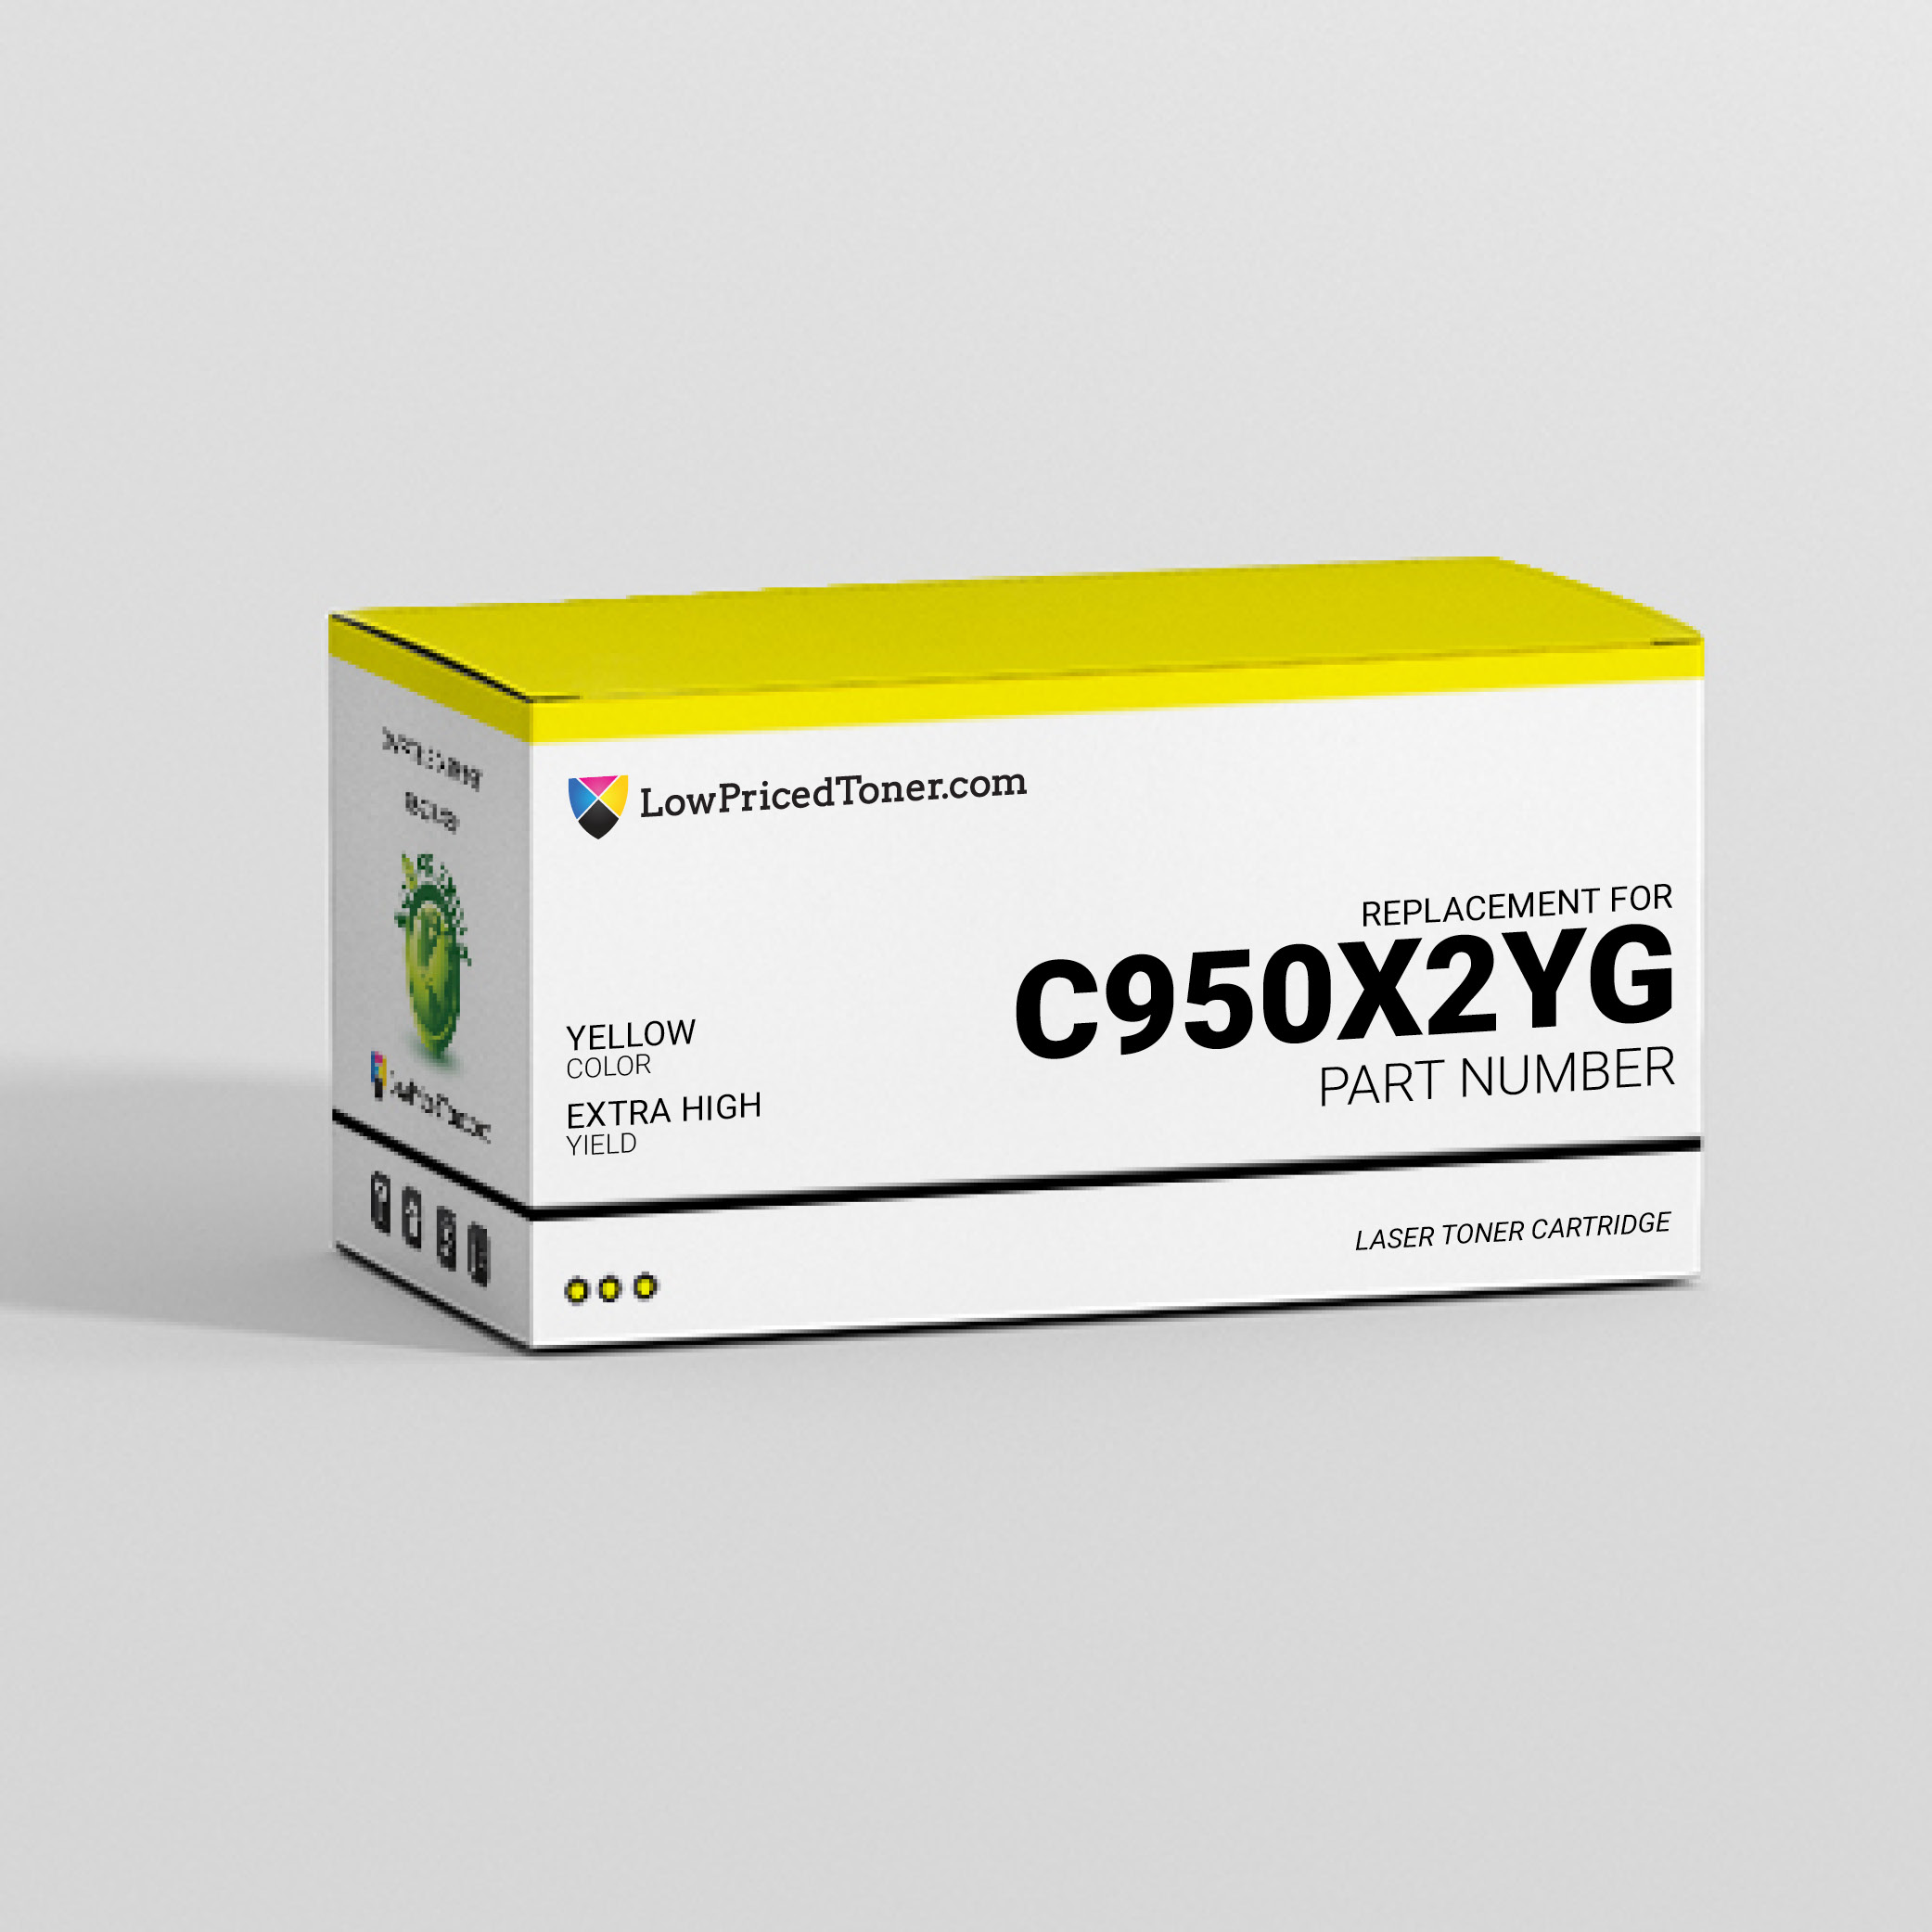 Lexmark C950X2YG Compatible Yellow Laser Toner Cartridge Extra High Yield